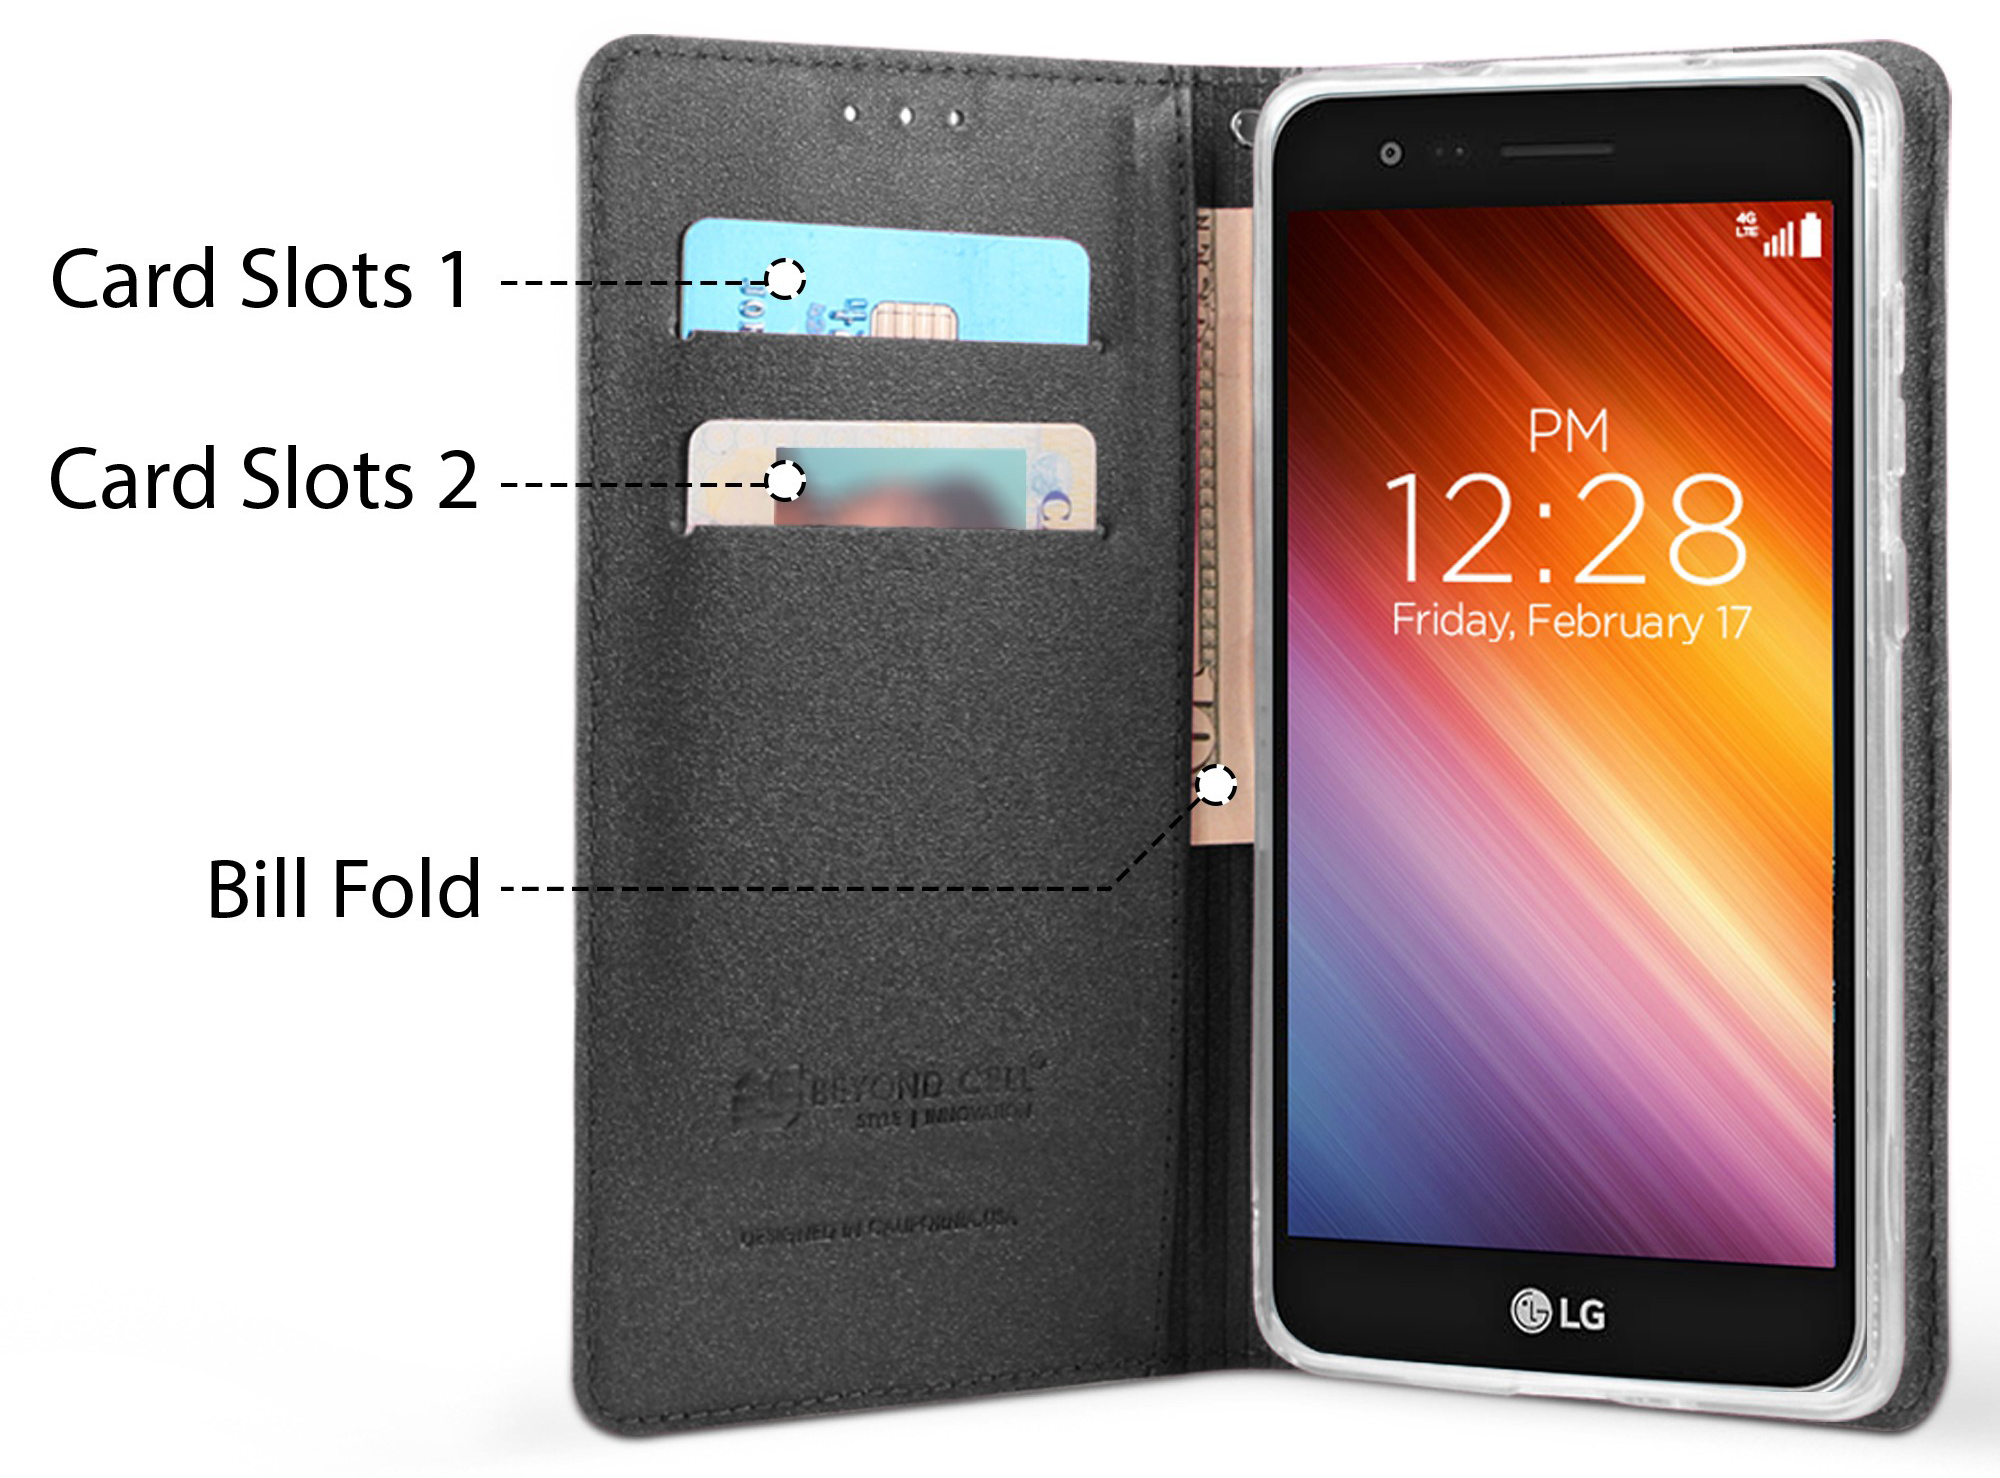 Details about WALLET CREDIT CARD SLOT CASE + WRIST STRAP for LG Zone 4,  Risio 2/3, Rebel 2/3